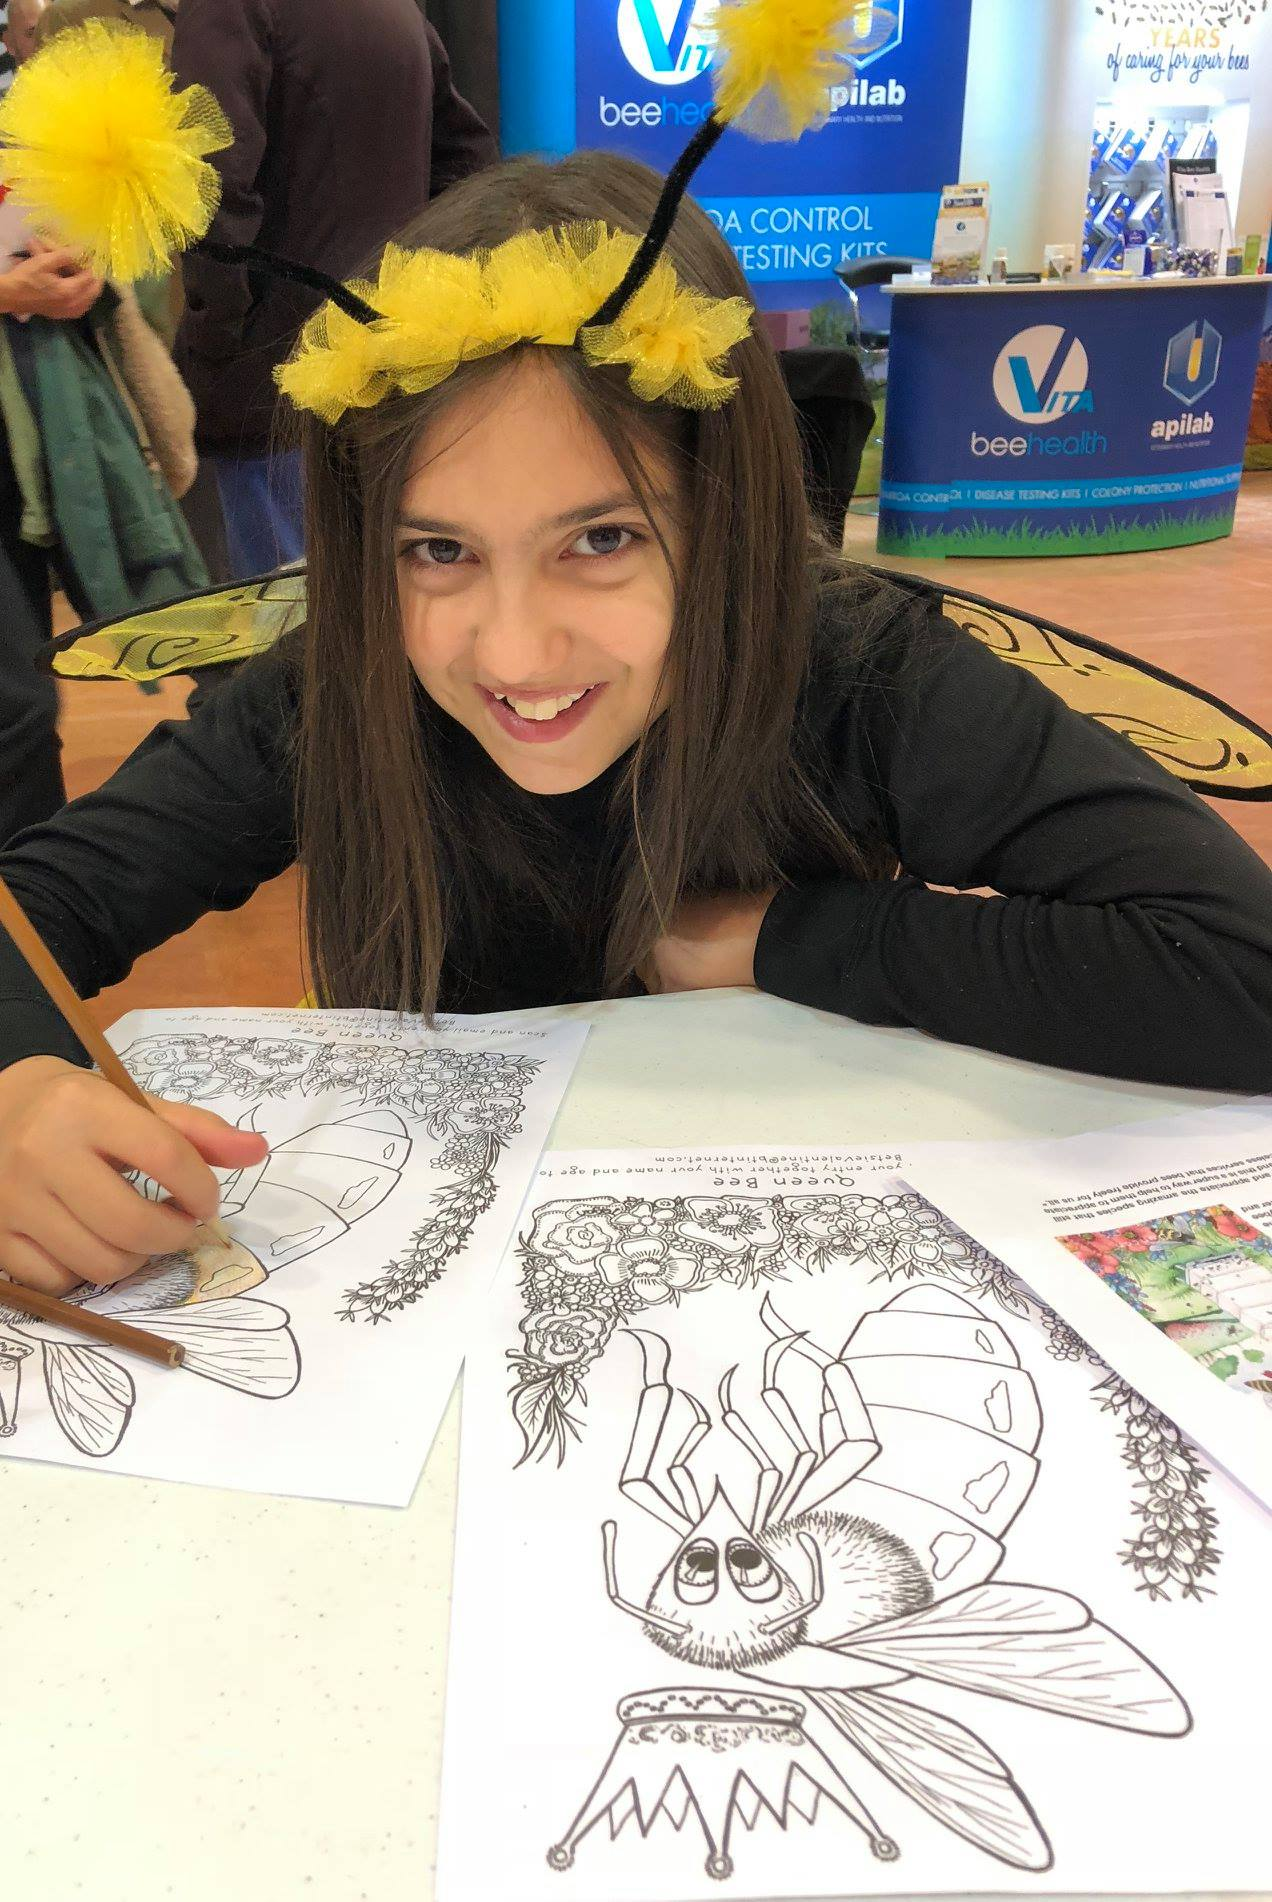 A GORGEOUS LITTLE HONEY BEE FLEW IN FOR THE COLOURING COMPETITION I SET UP TO WIN A SIGNED PRINT OF THE QUEEN BEE FROM PAGE 25 OF THE BOOK.